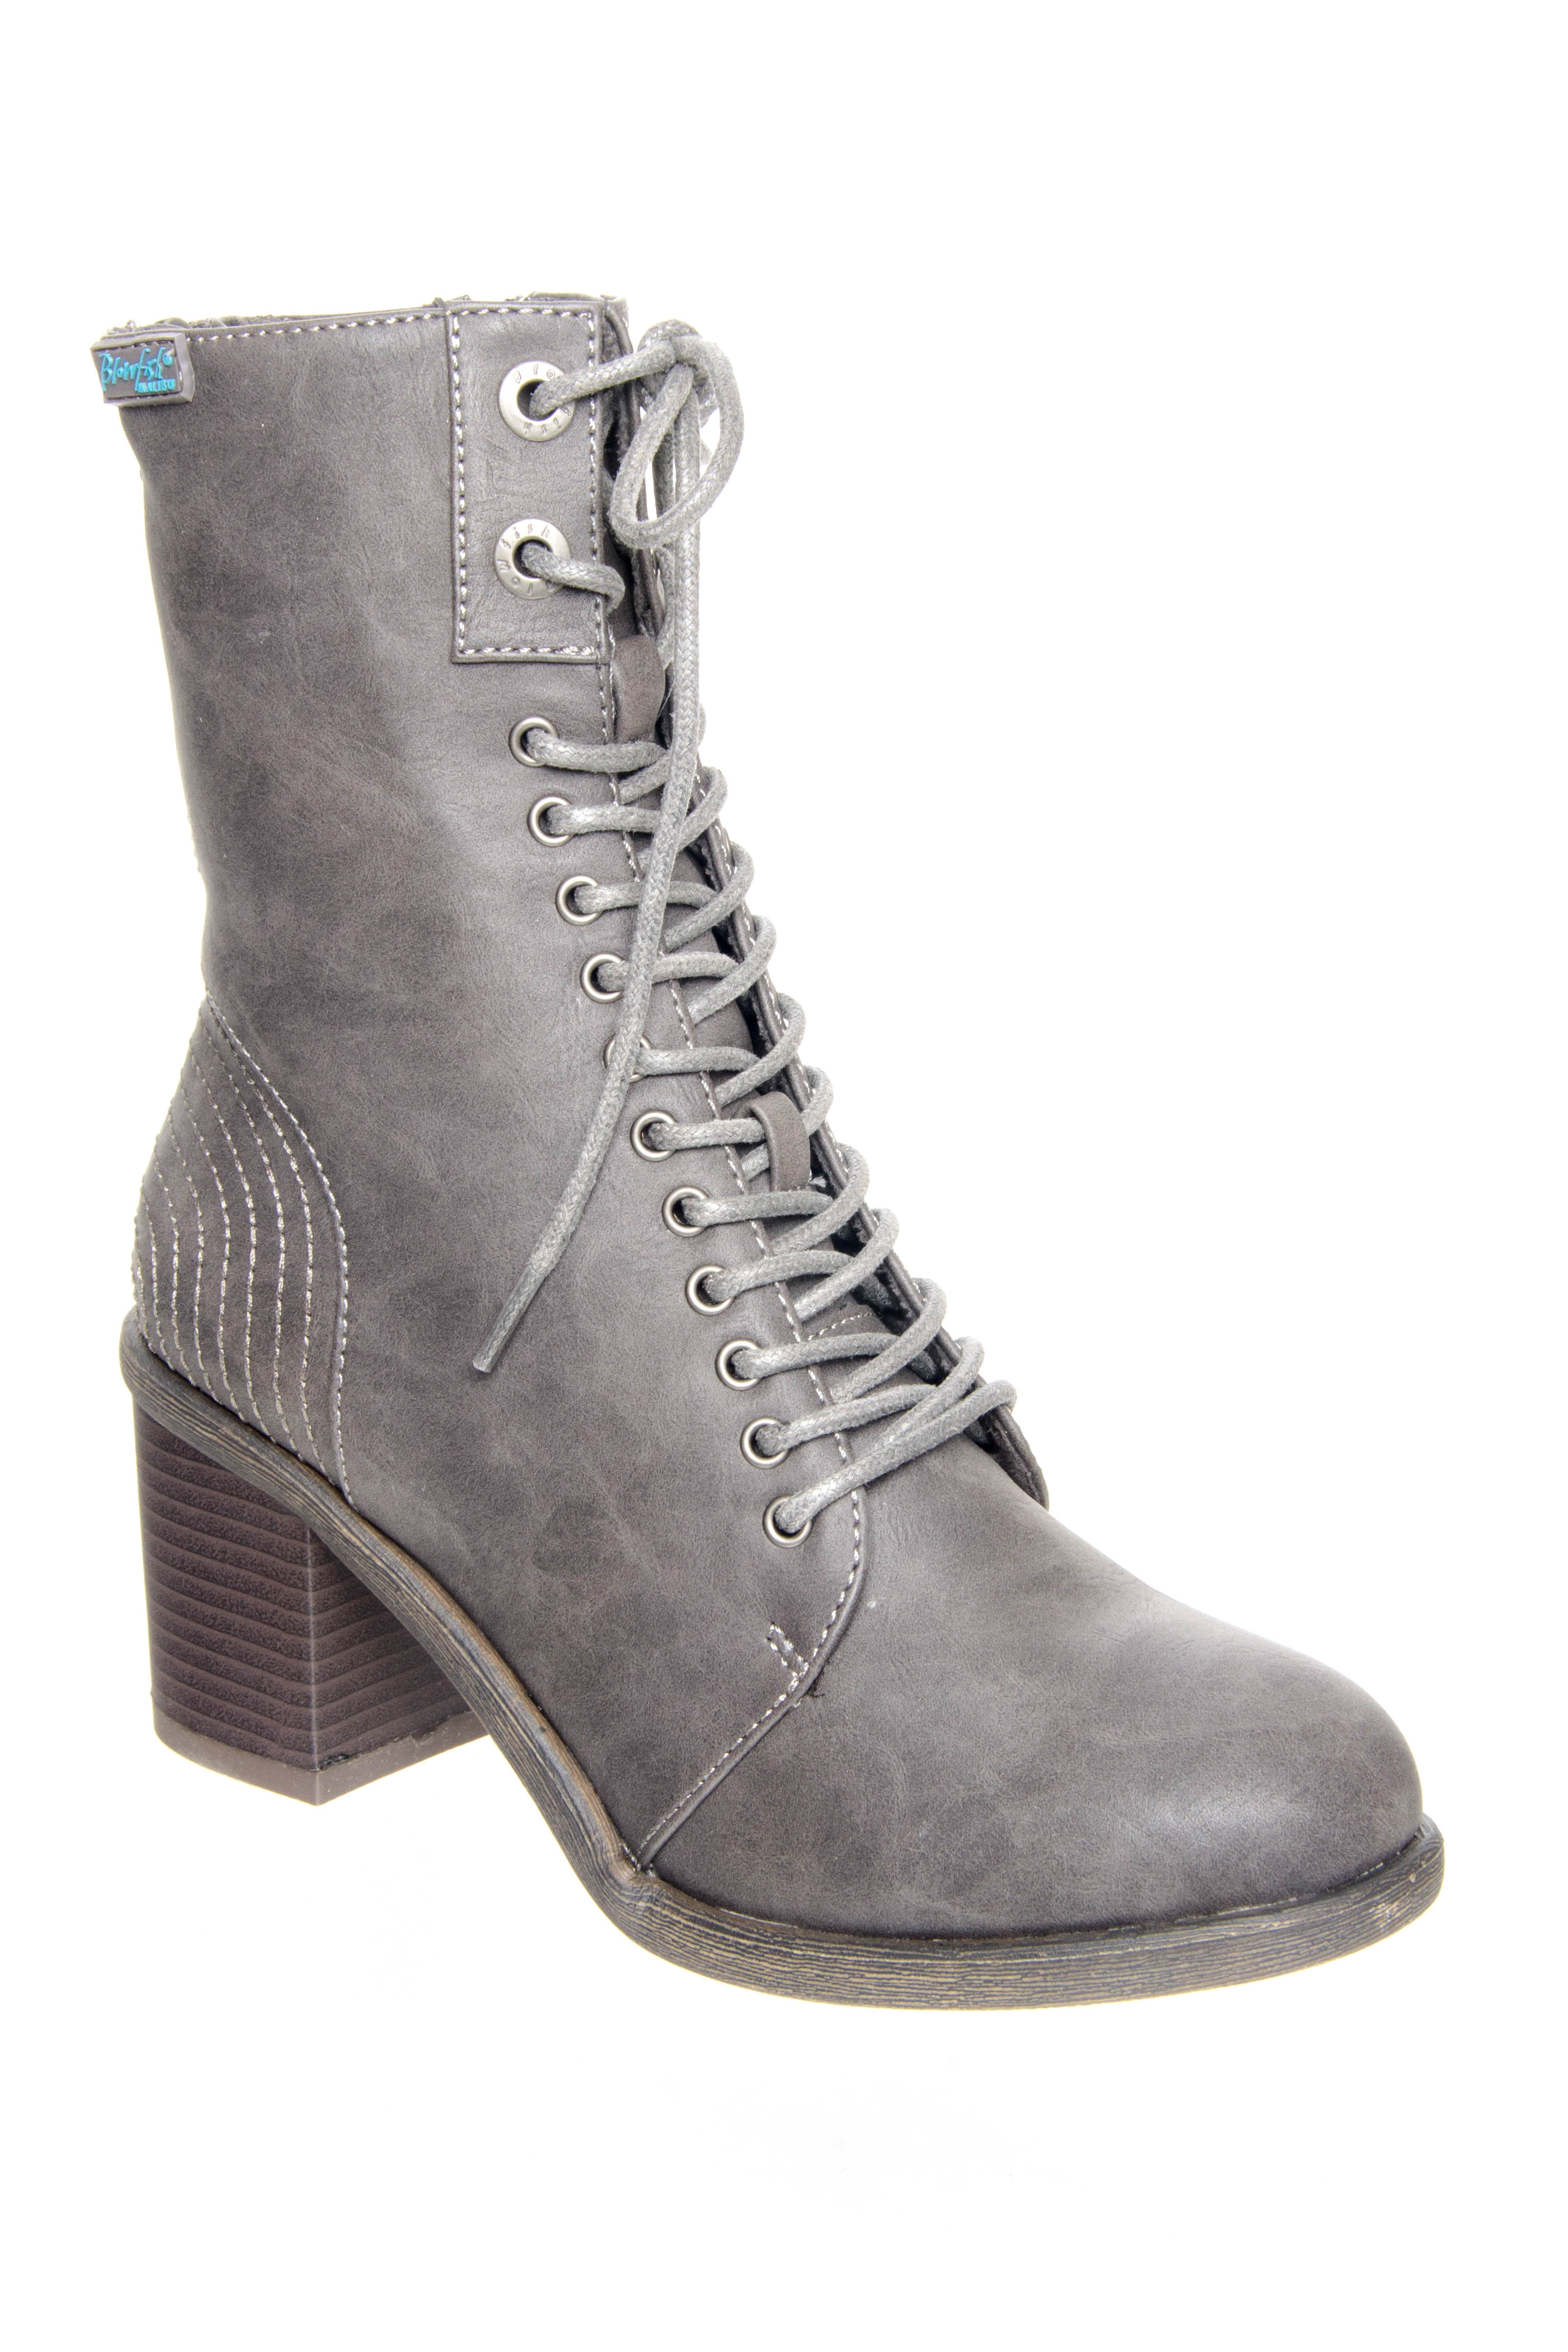 Blowfish Mammer Mid Heel Boots - Grey